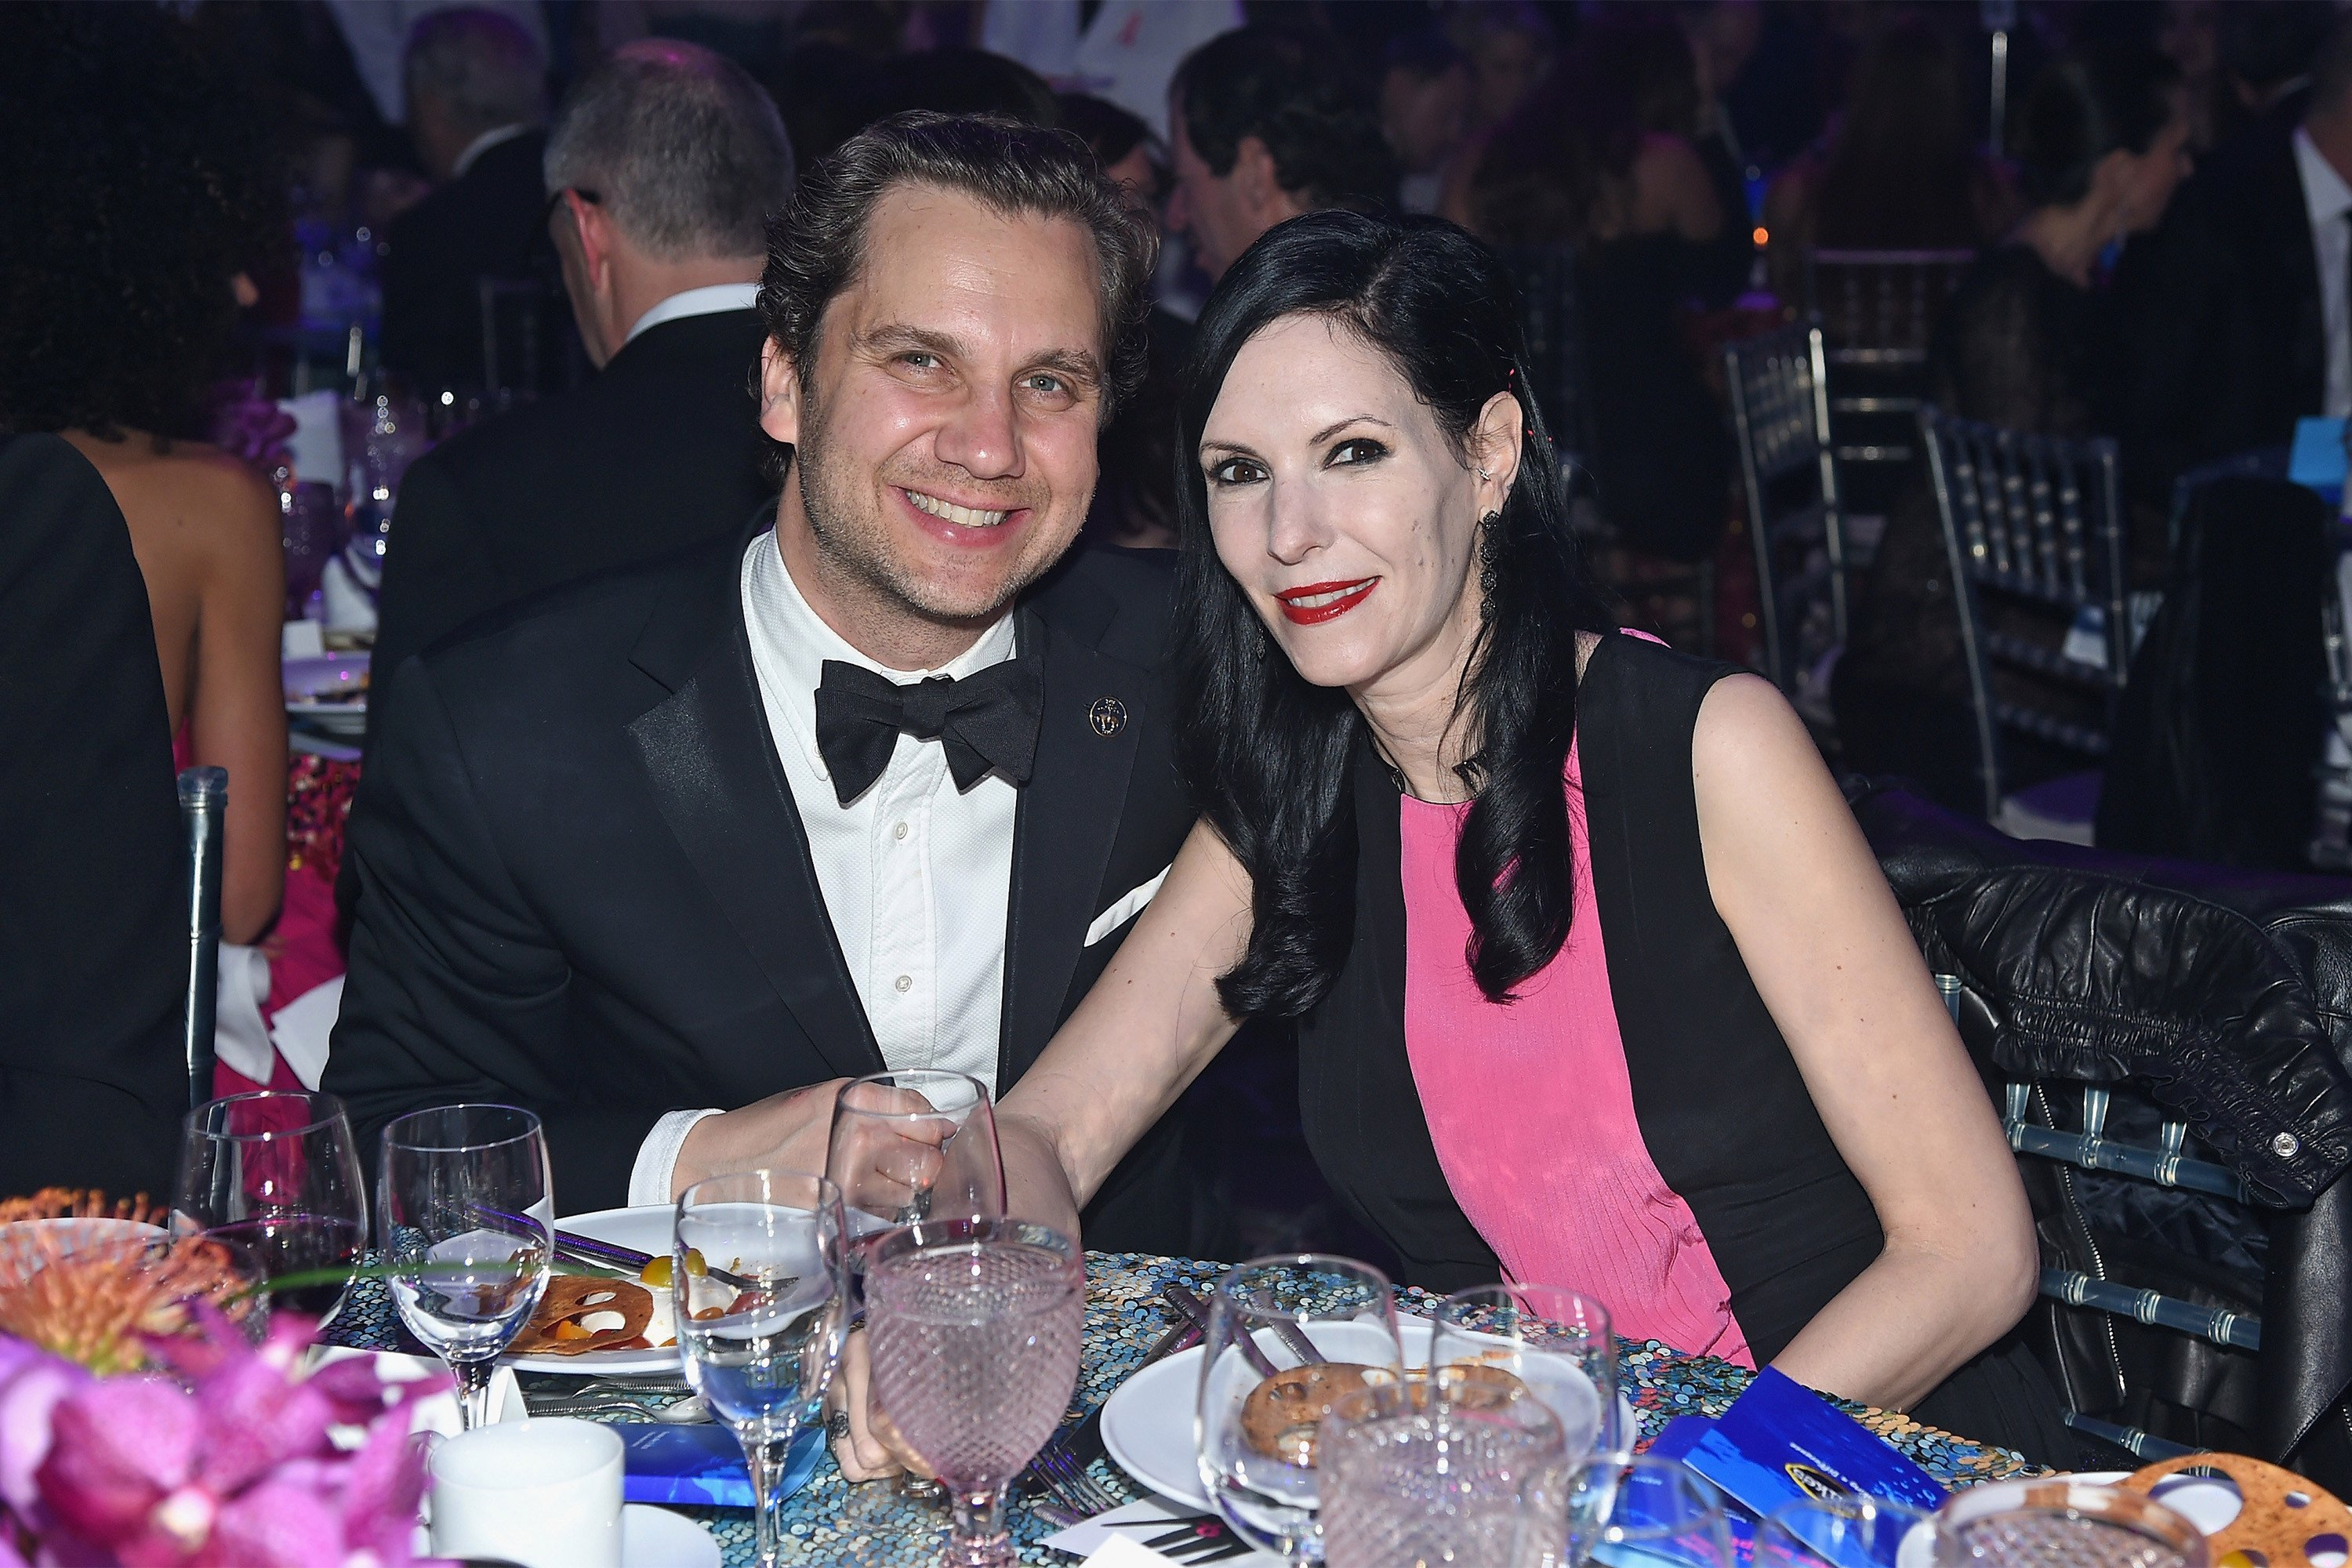 Jill Kargman dishes on 'new boobs' after double mastectomy